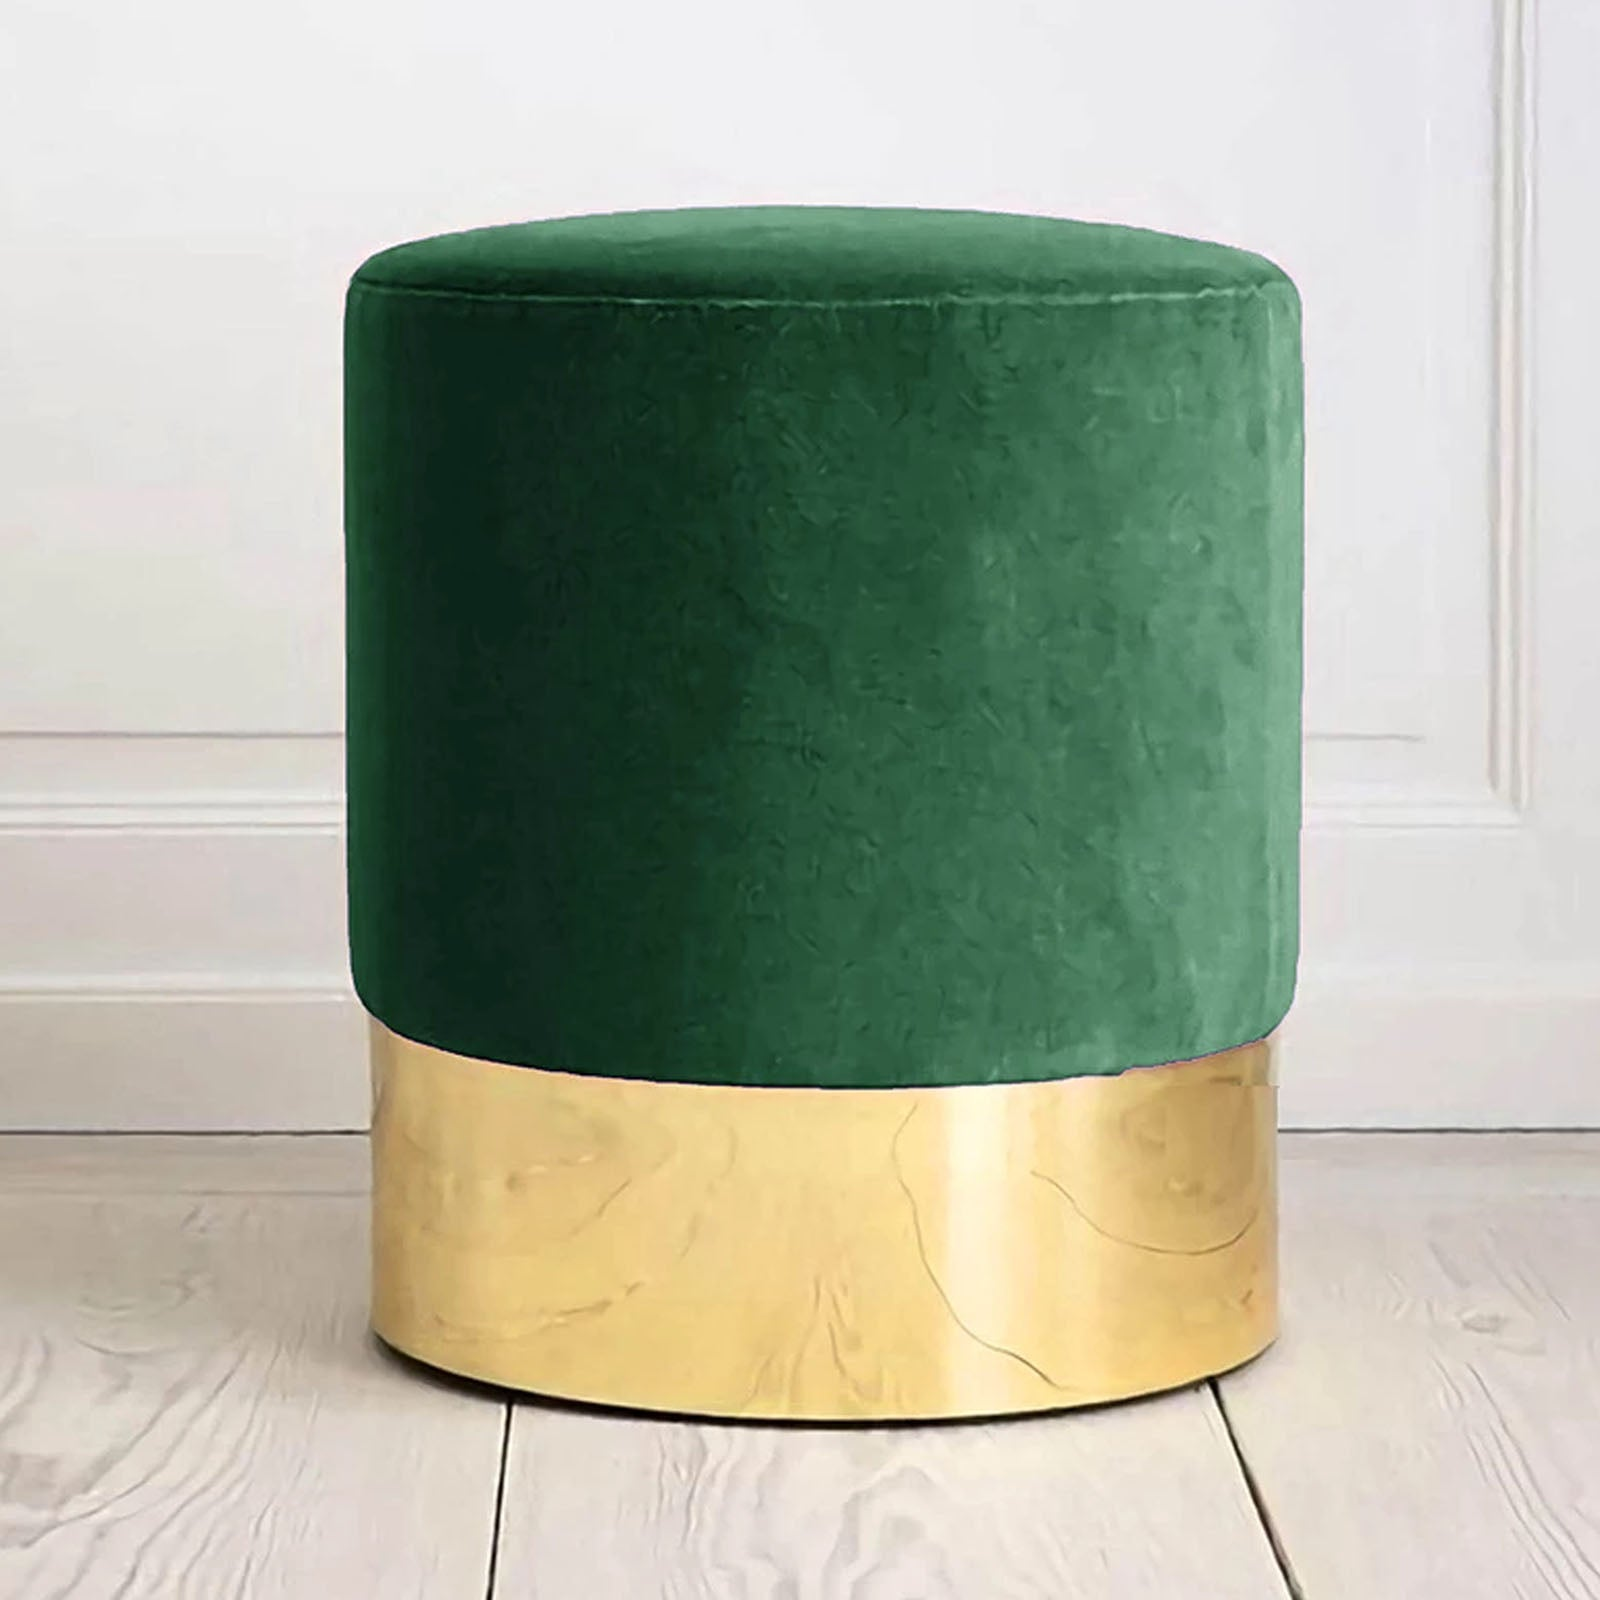 Velletri  Stool TG-196-Gr -  مقعد فيليتري - Shop Online Furniture and Home Decor Store in Dubai, UAE at ebarza